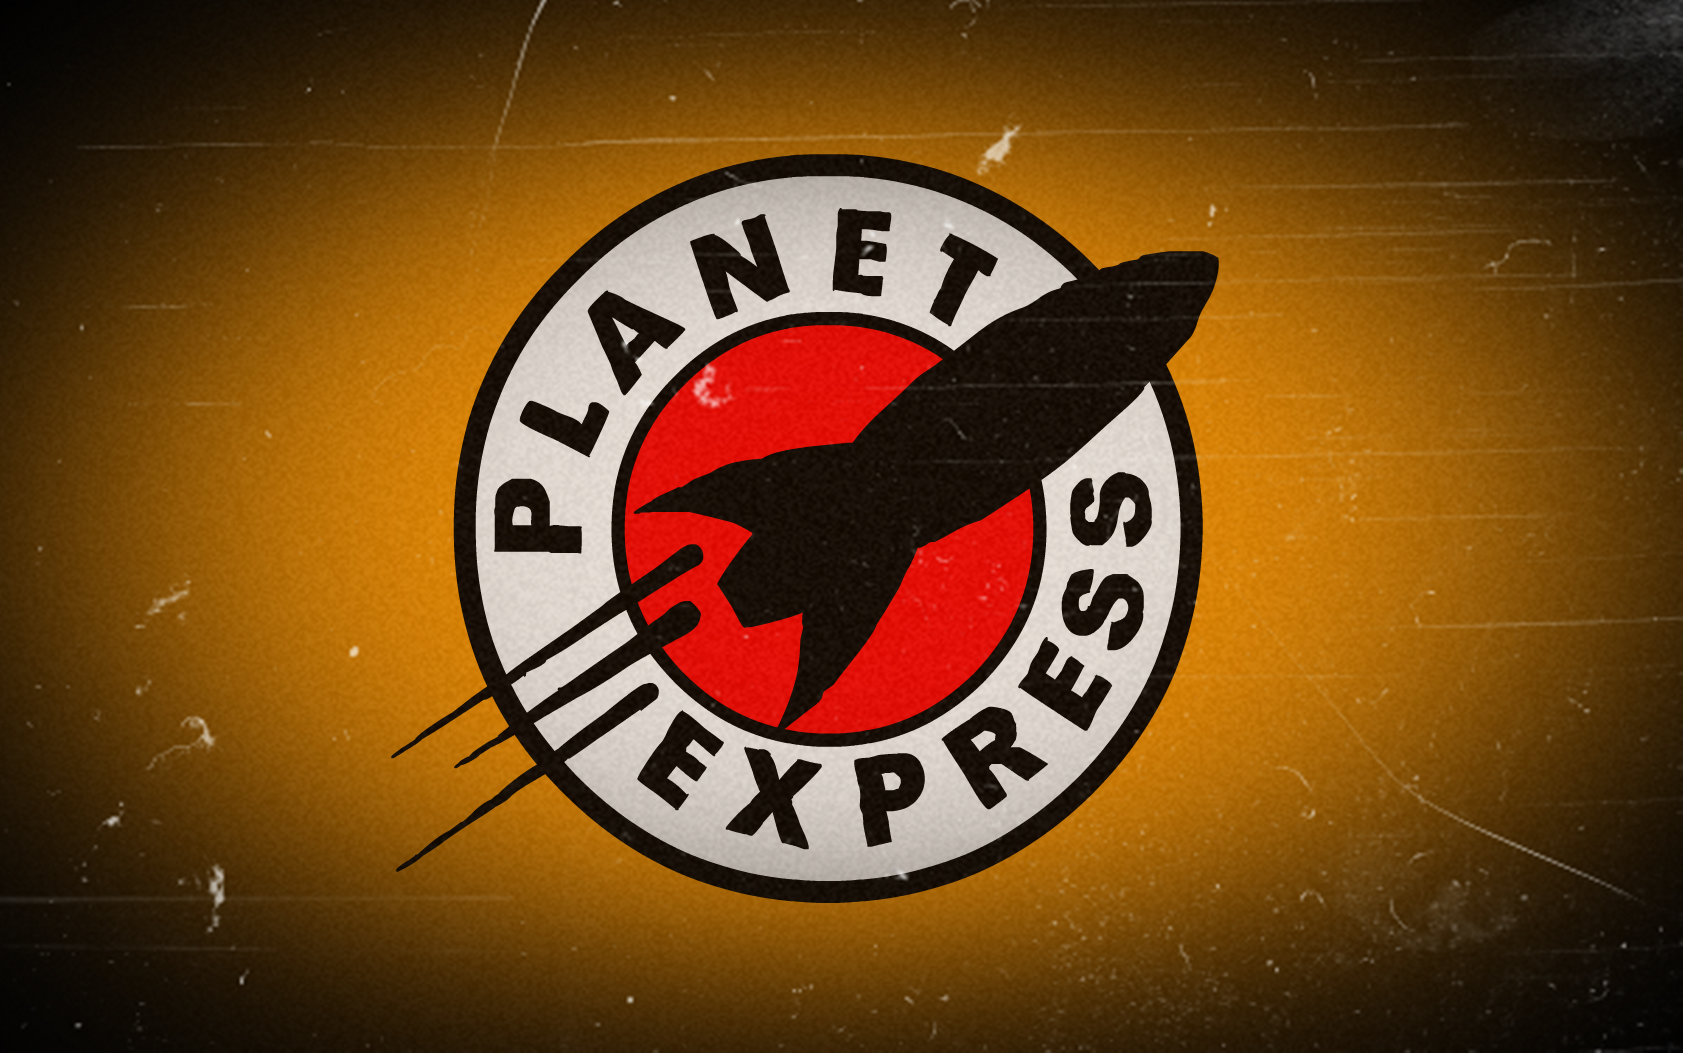 Planet Express Costume